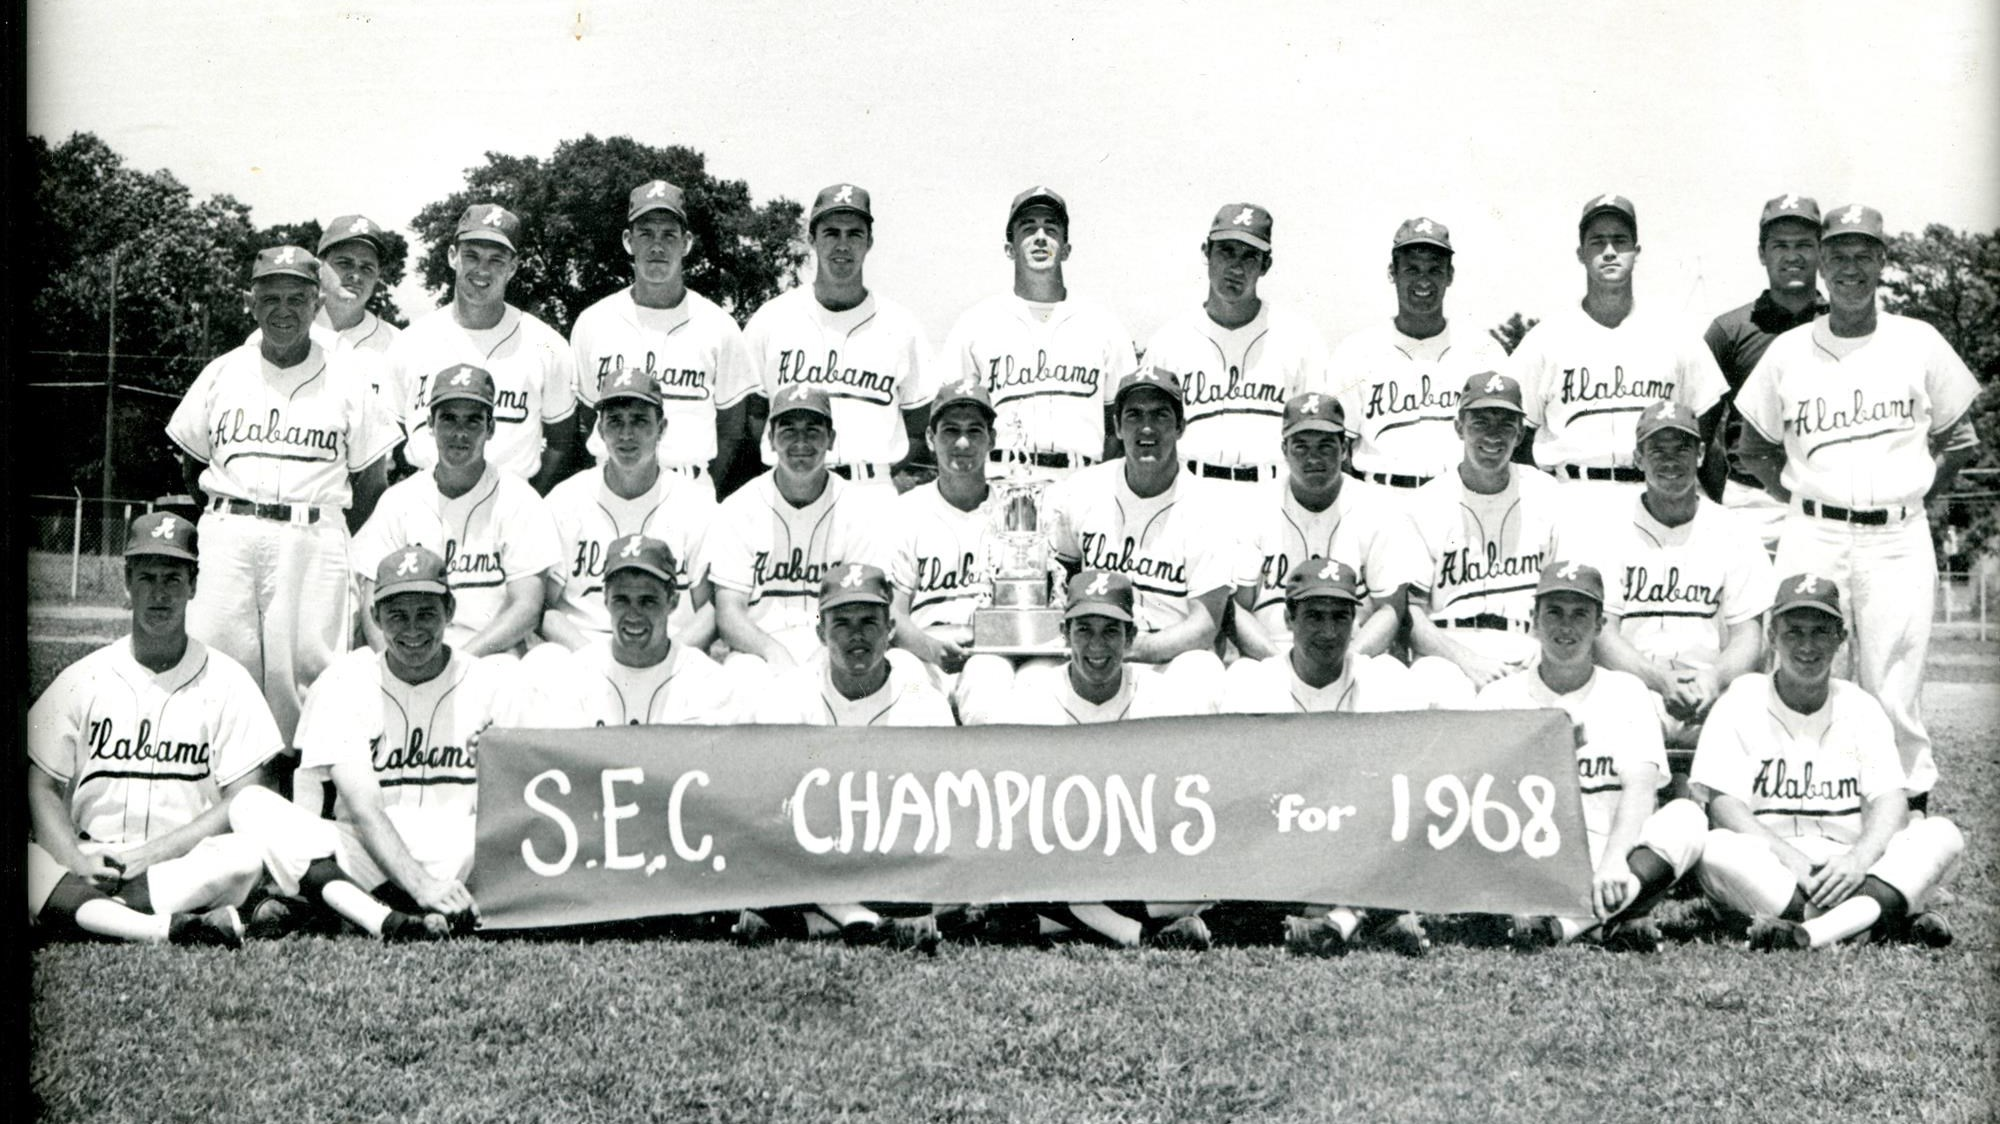 1968 Alabama Baseball Team To Be Honored At Saturdays Game Against Auburn